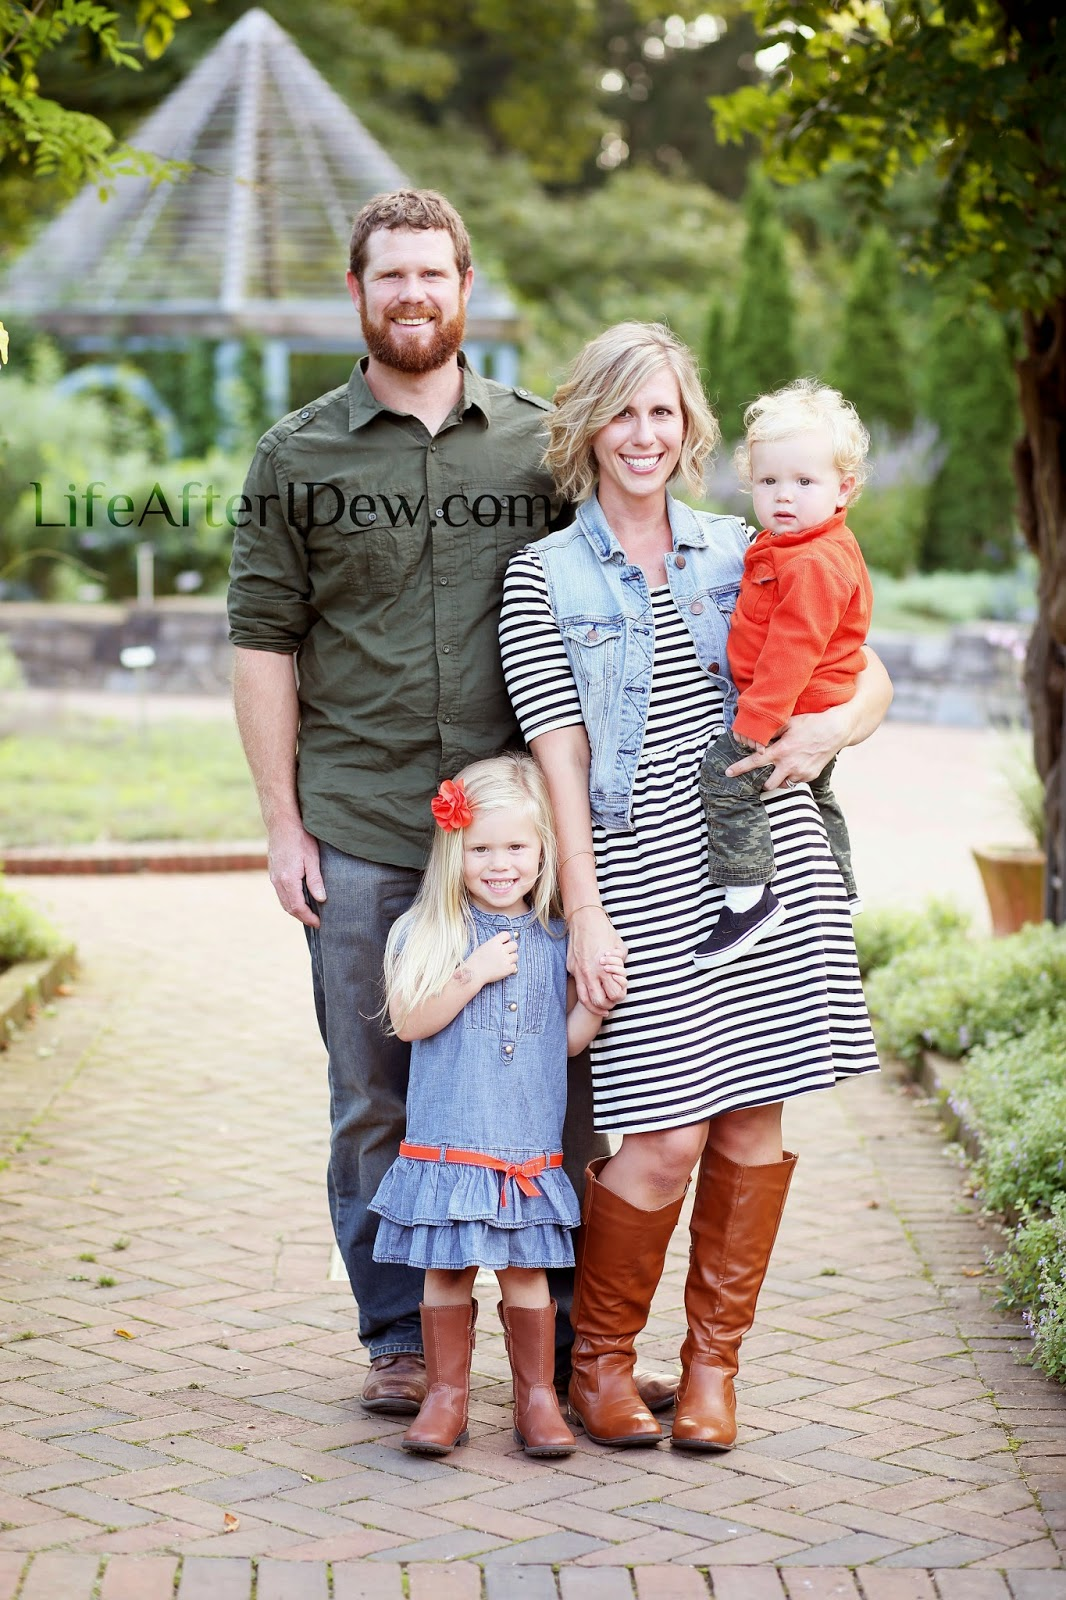 Fall Family Photo Outfits